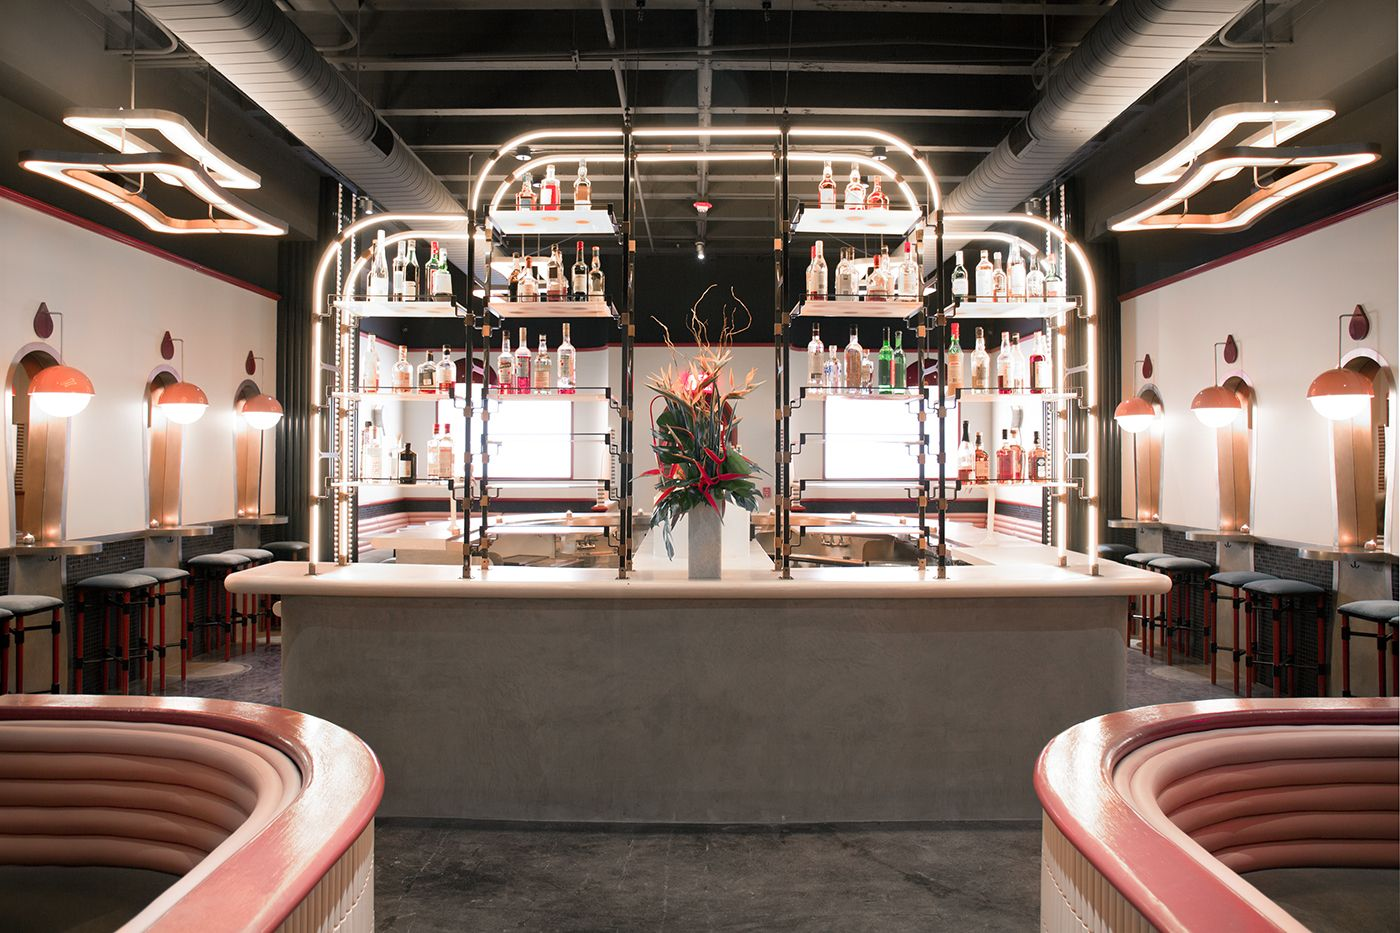 Bibo ergo sum restaurant inspired by secession and memphis